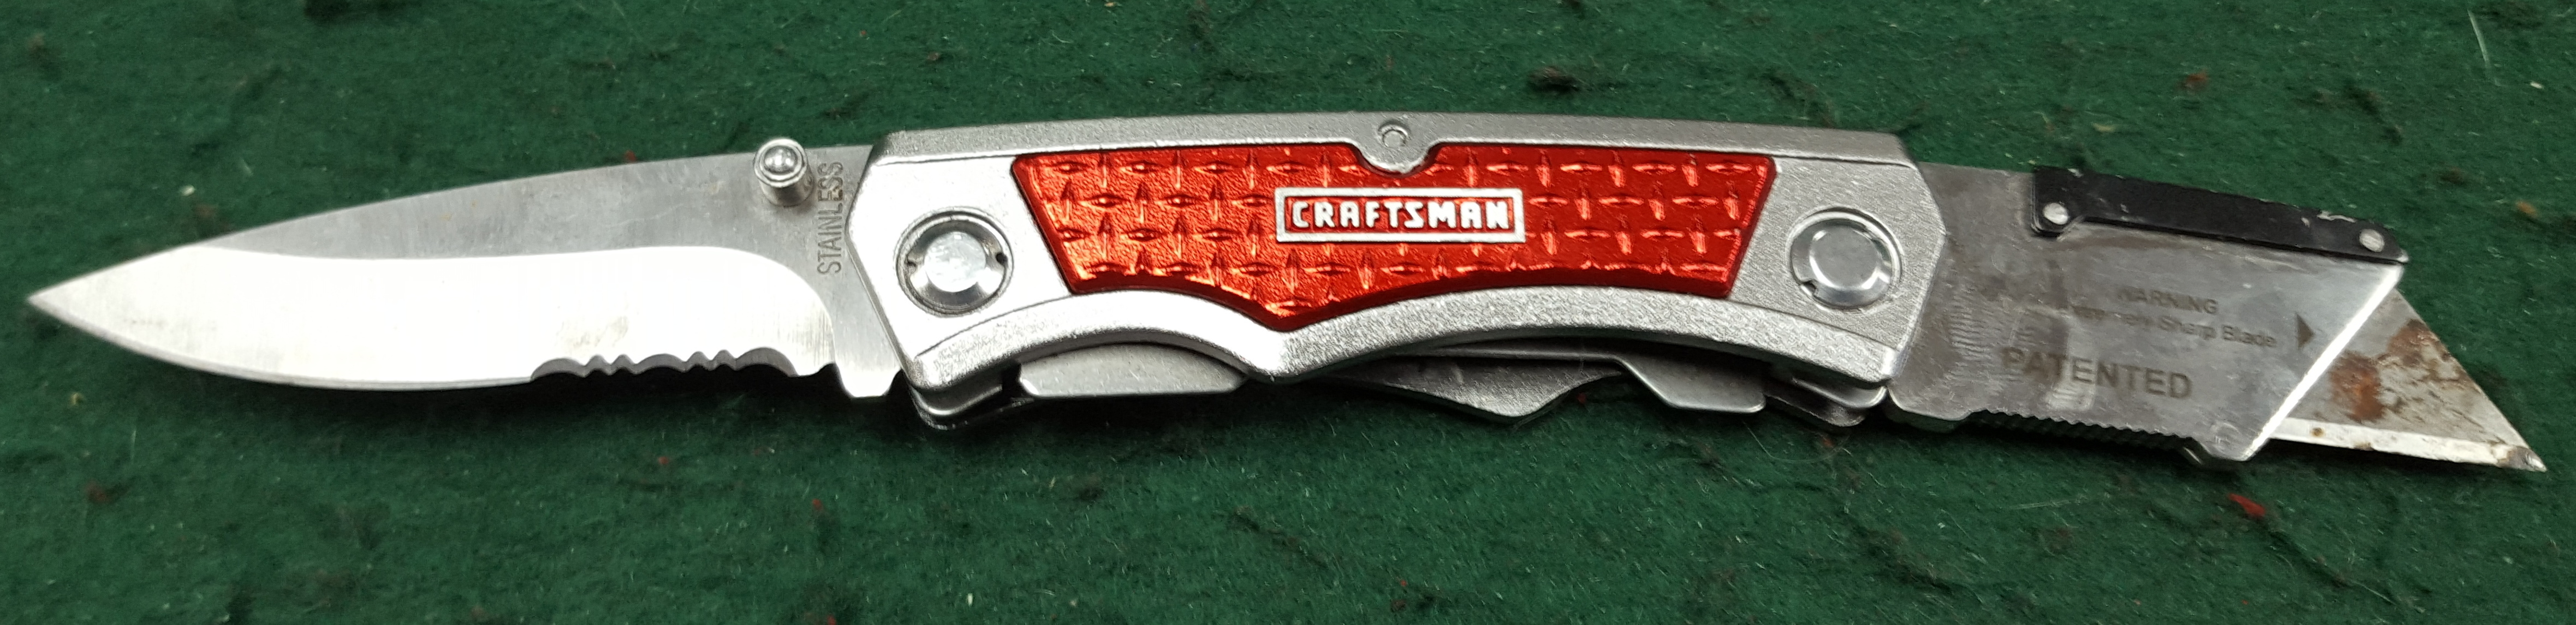 CRAFTSMAN UTILITY KNIFE COMBO IN NYLON SHEATH